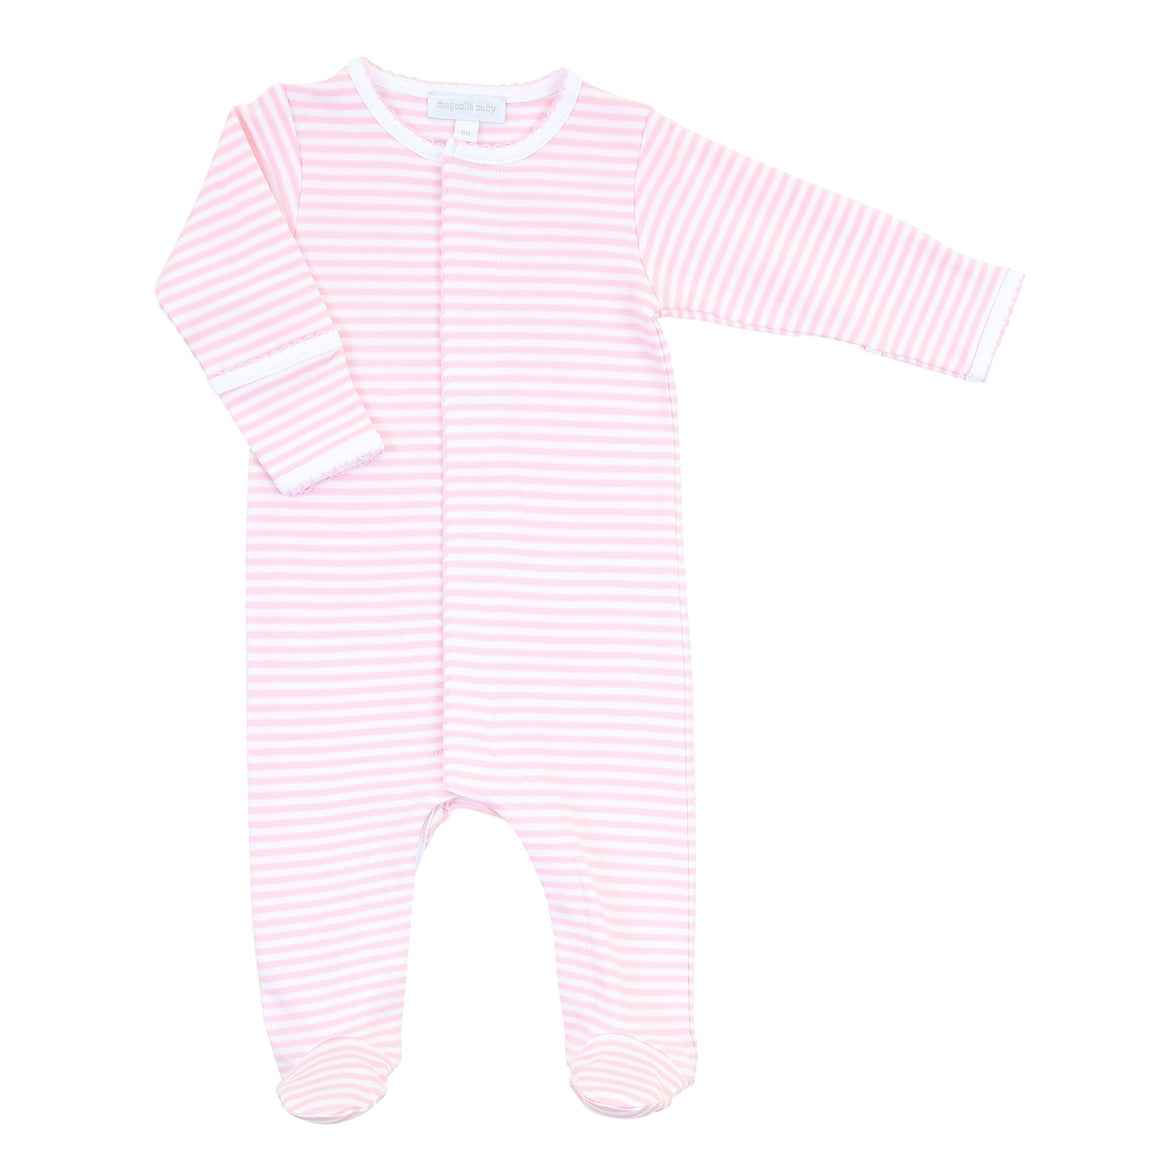 Magnolia Baby | Essentials Pink Stripes Footie